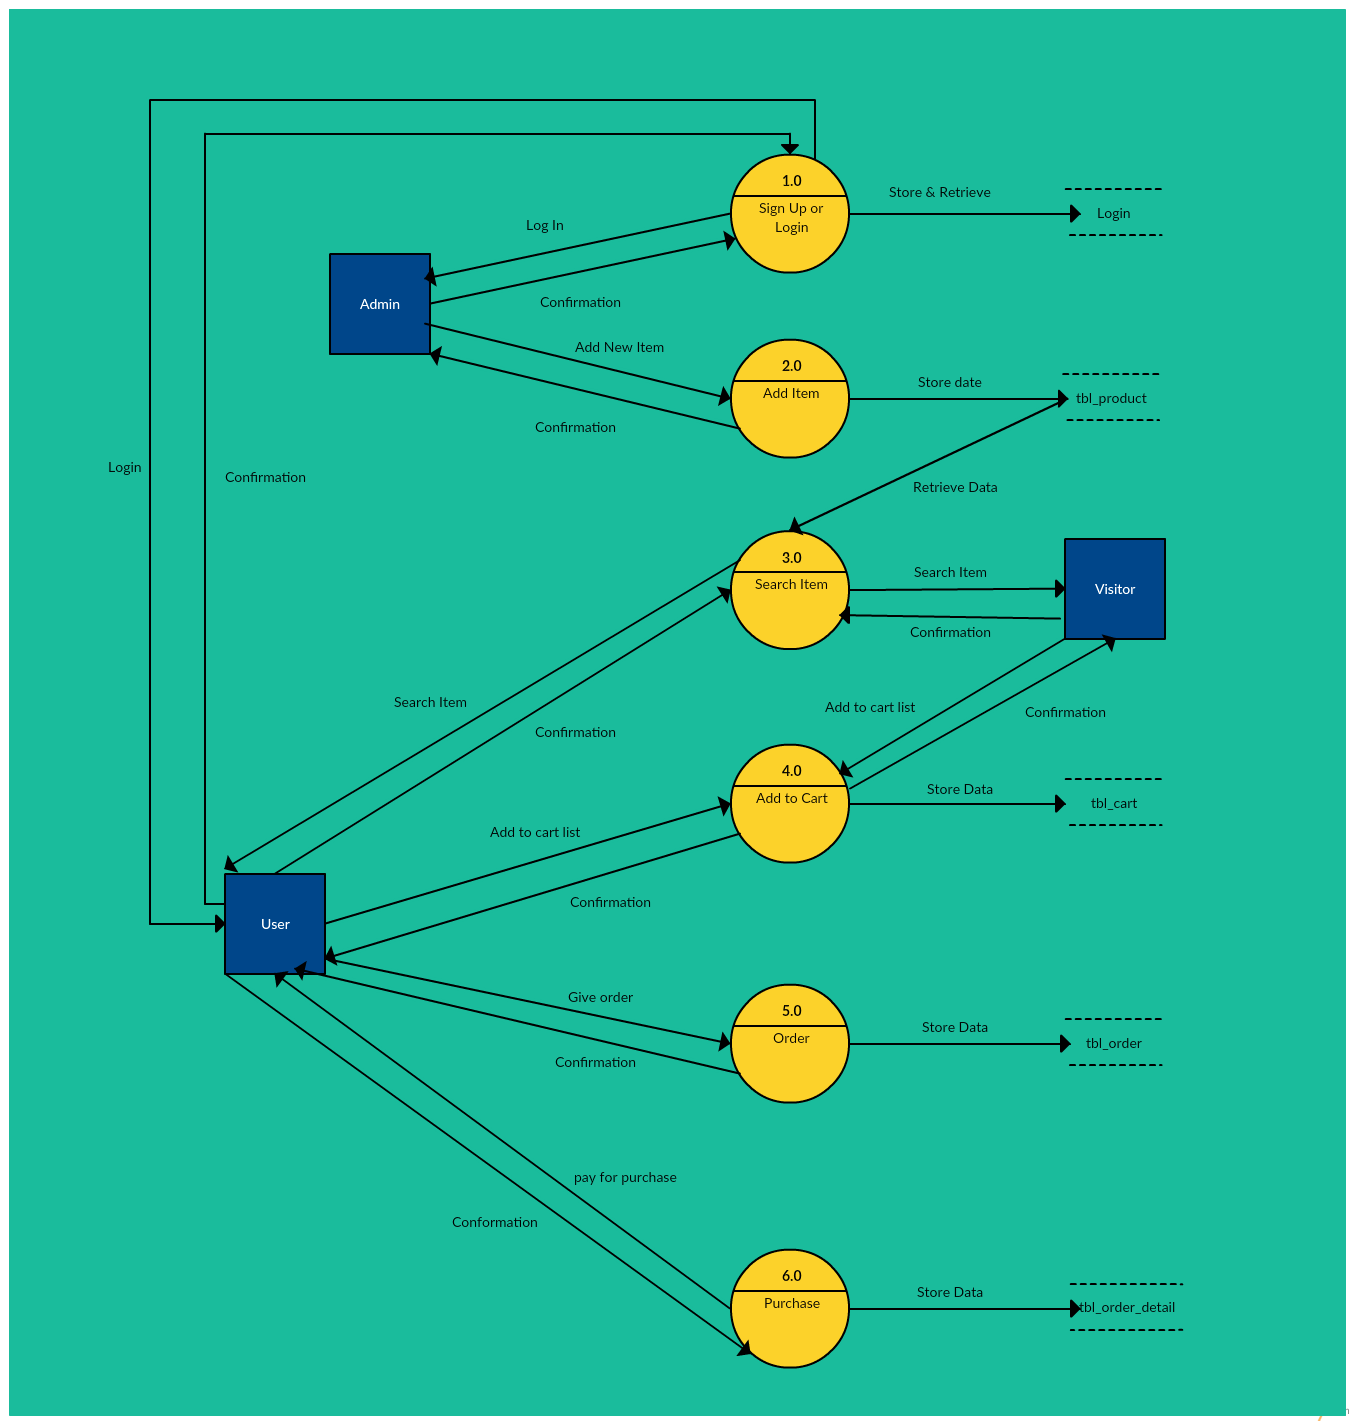 Data flow diagram templates to map data flows creately blog level 2 data flow diagram templates available in creately pooptronica Image collections